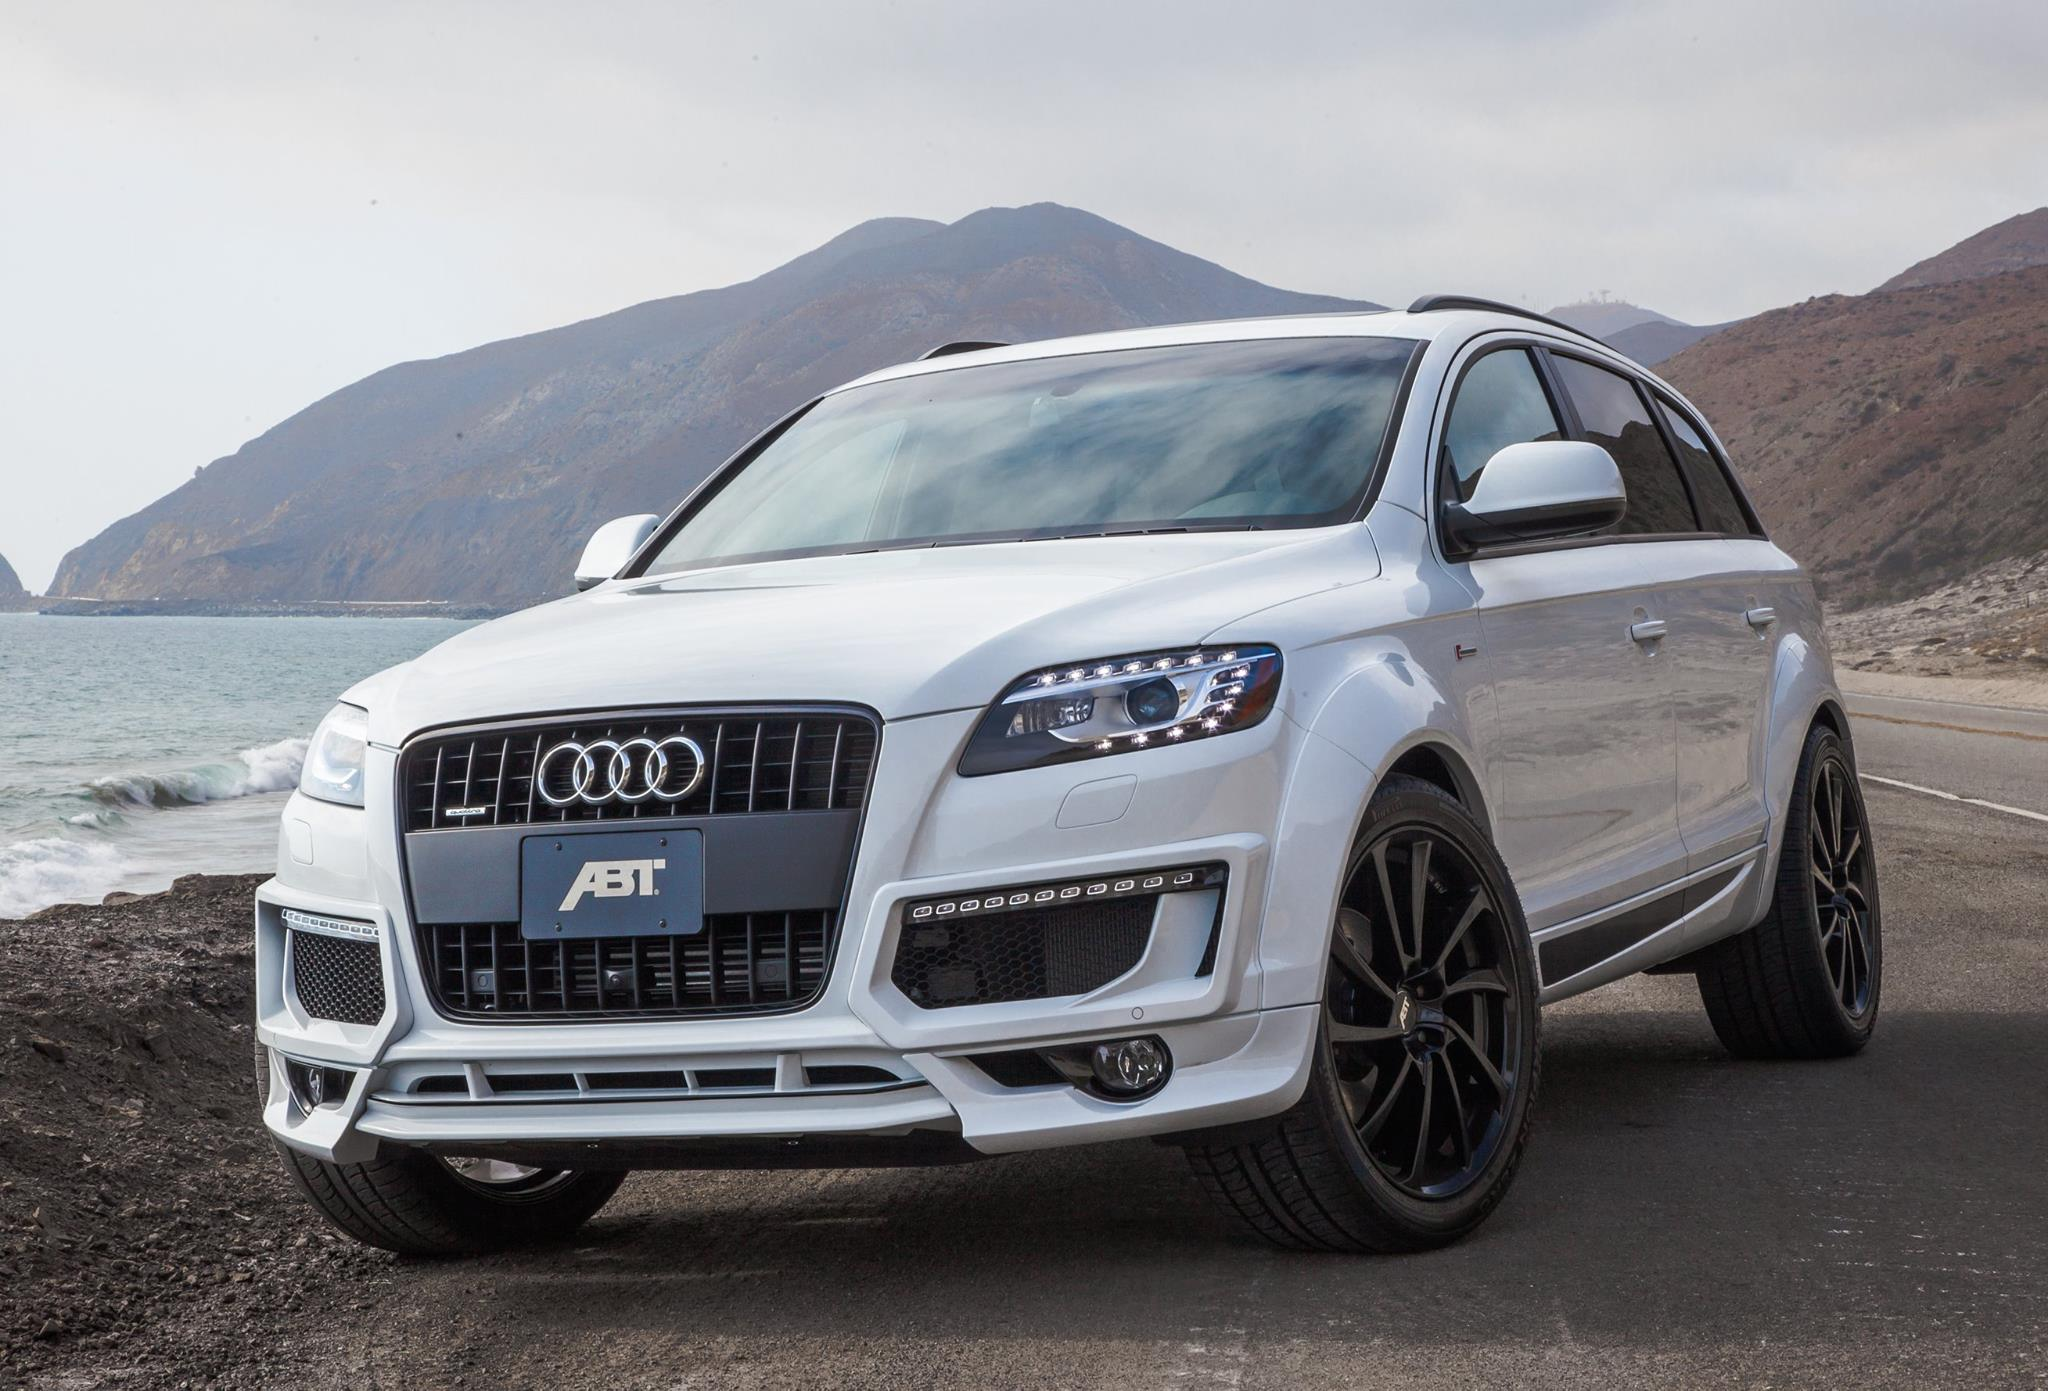 ABT Takes One Last Look at the Audi Q7 Before the Next-Gen Arrives